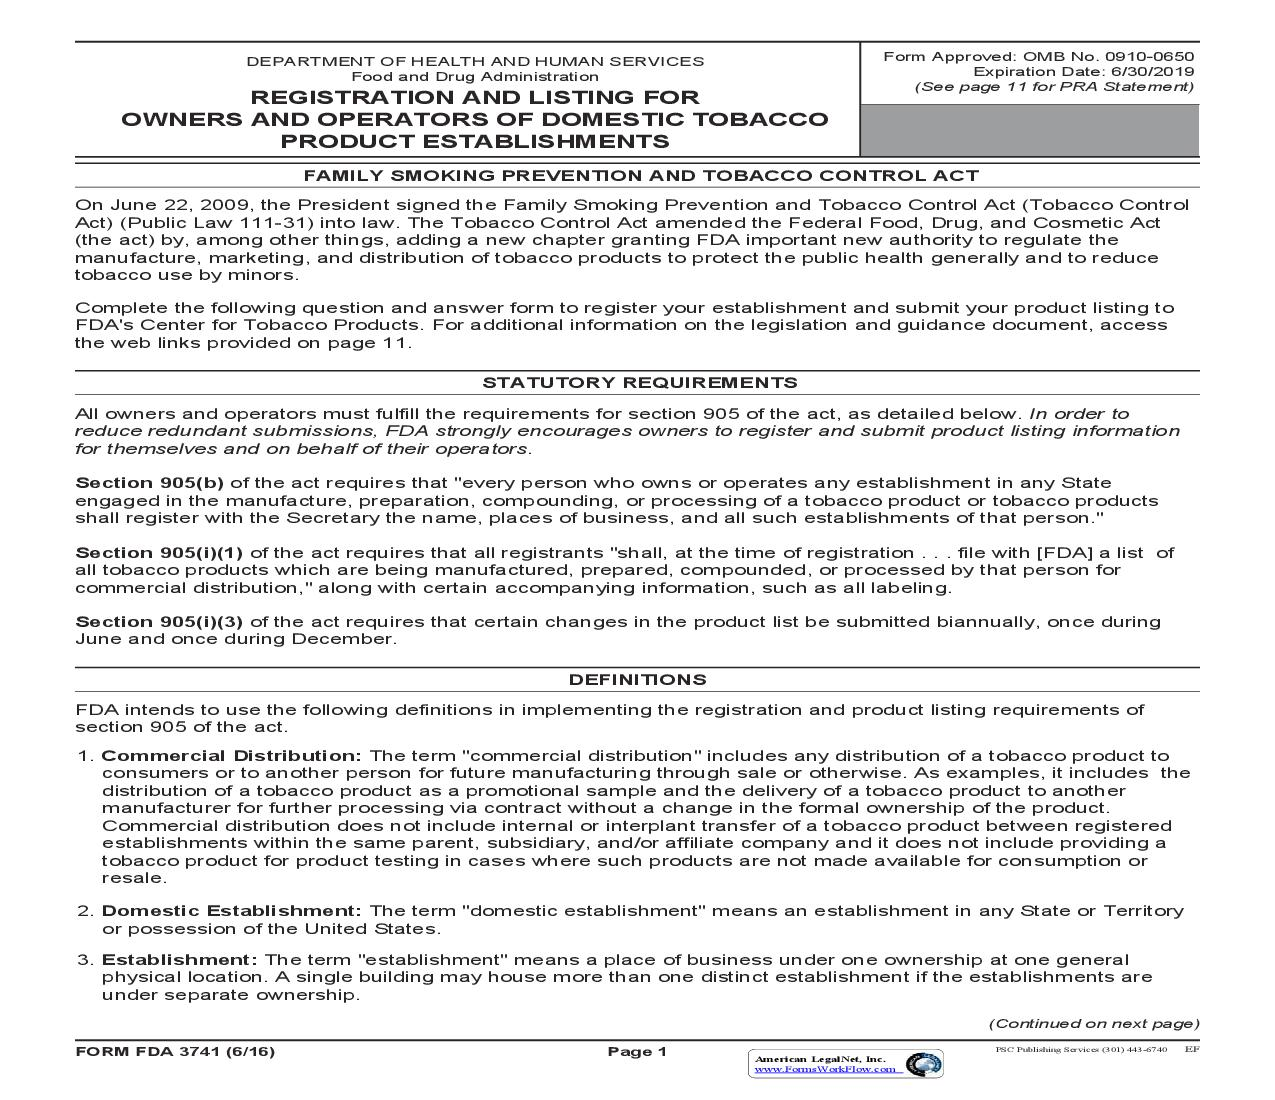 Registration And Listing For Owners And Operators Of Domestic Tobacco Product Establishments {FDA 3741} | Pdf Fpdf Doc Docx | Official Federal Forms